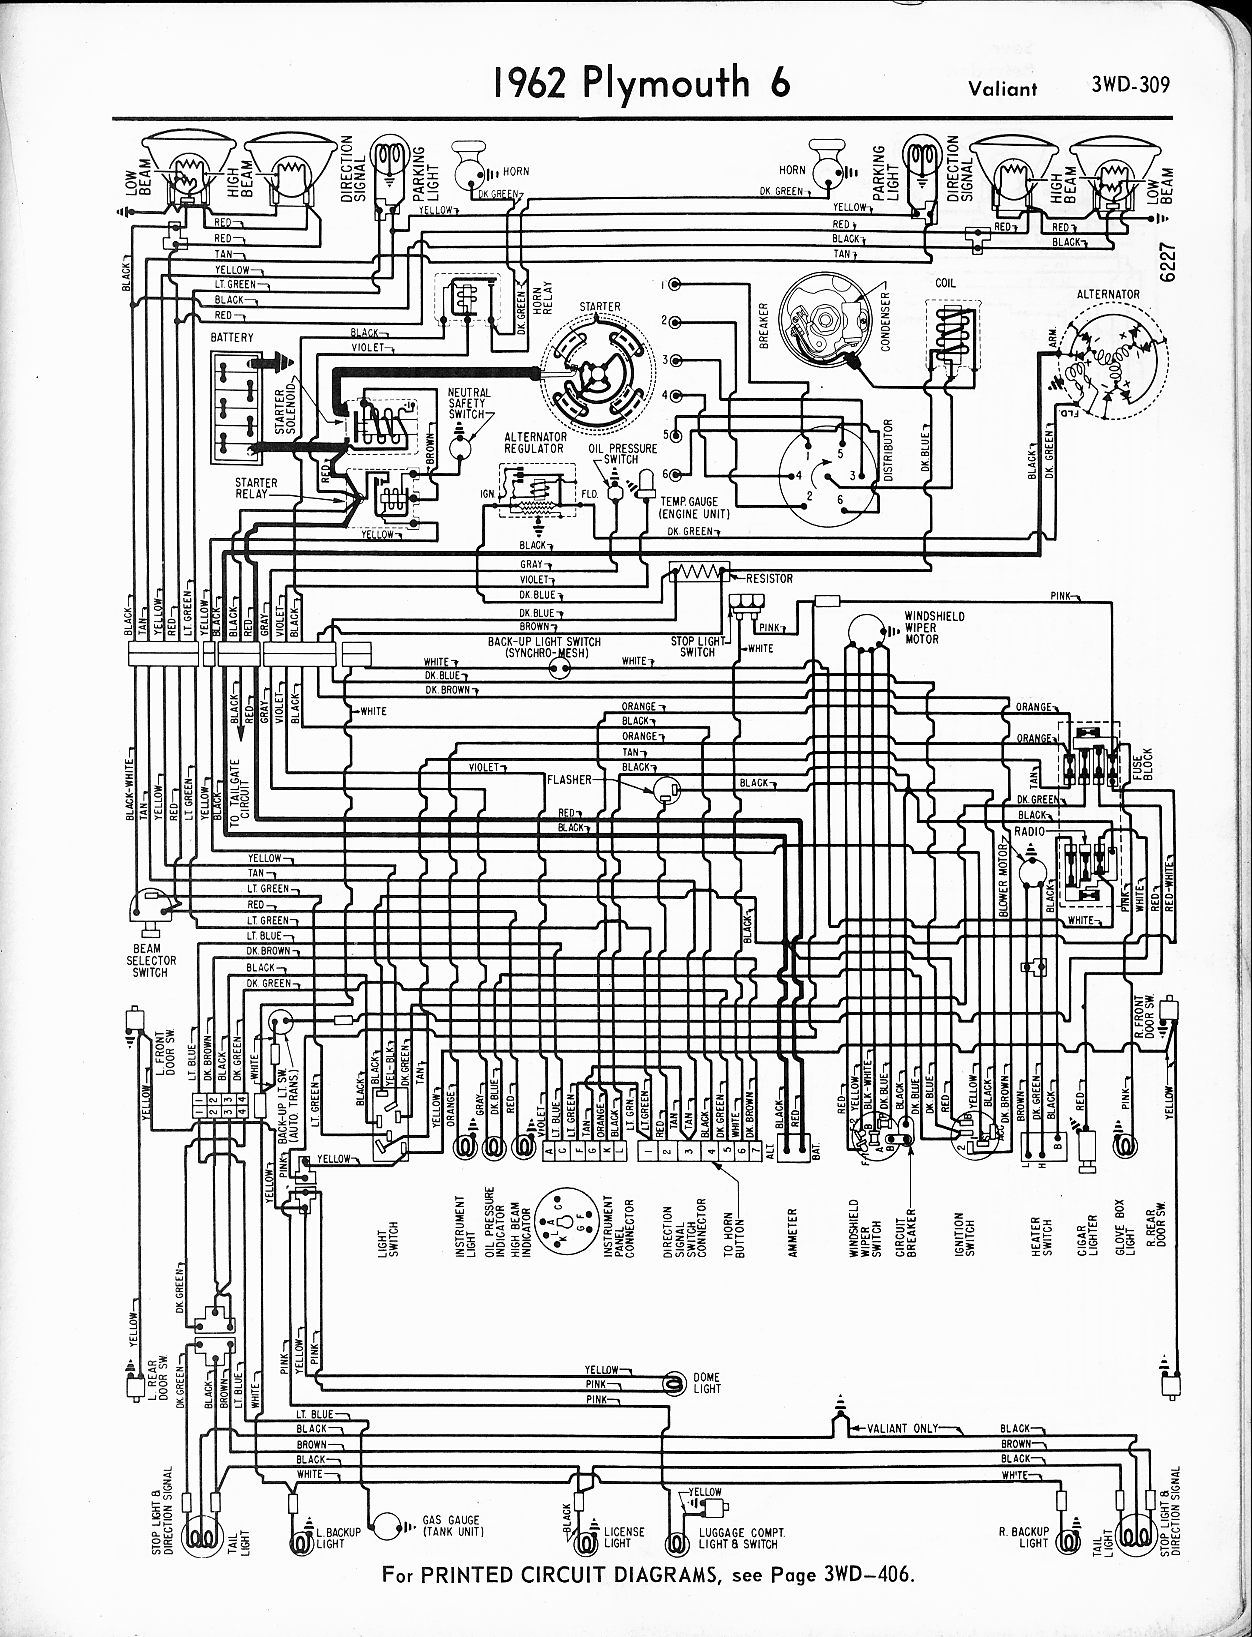 1956 - 1965 plymouth wiring - the old car manual project 1974 plymouth scamp wiring diagram